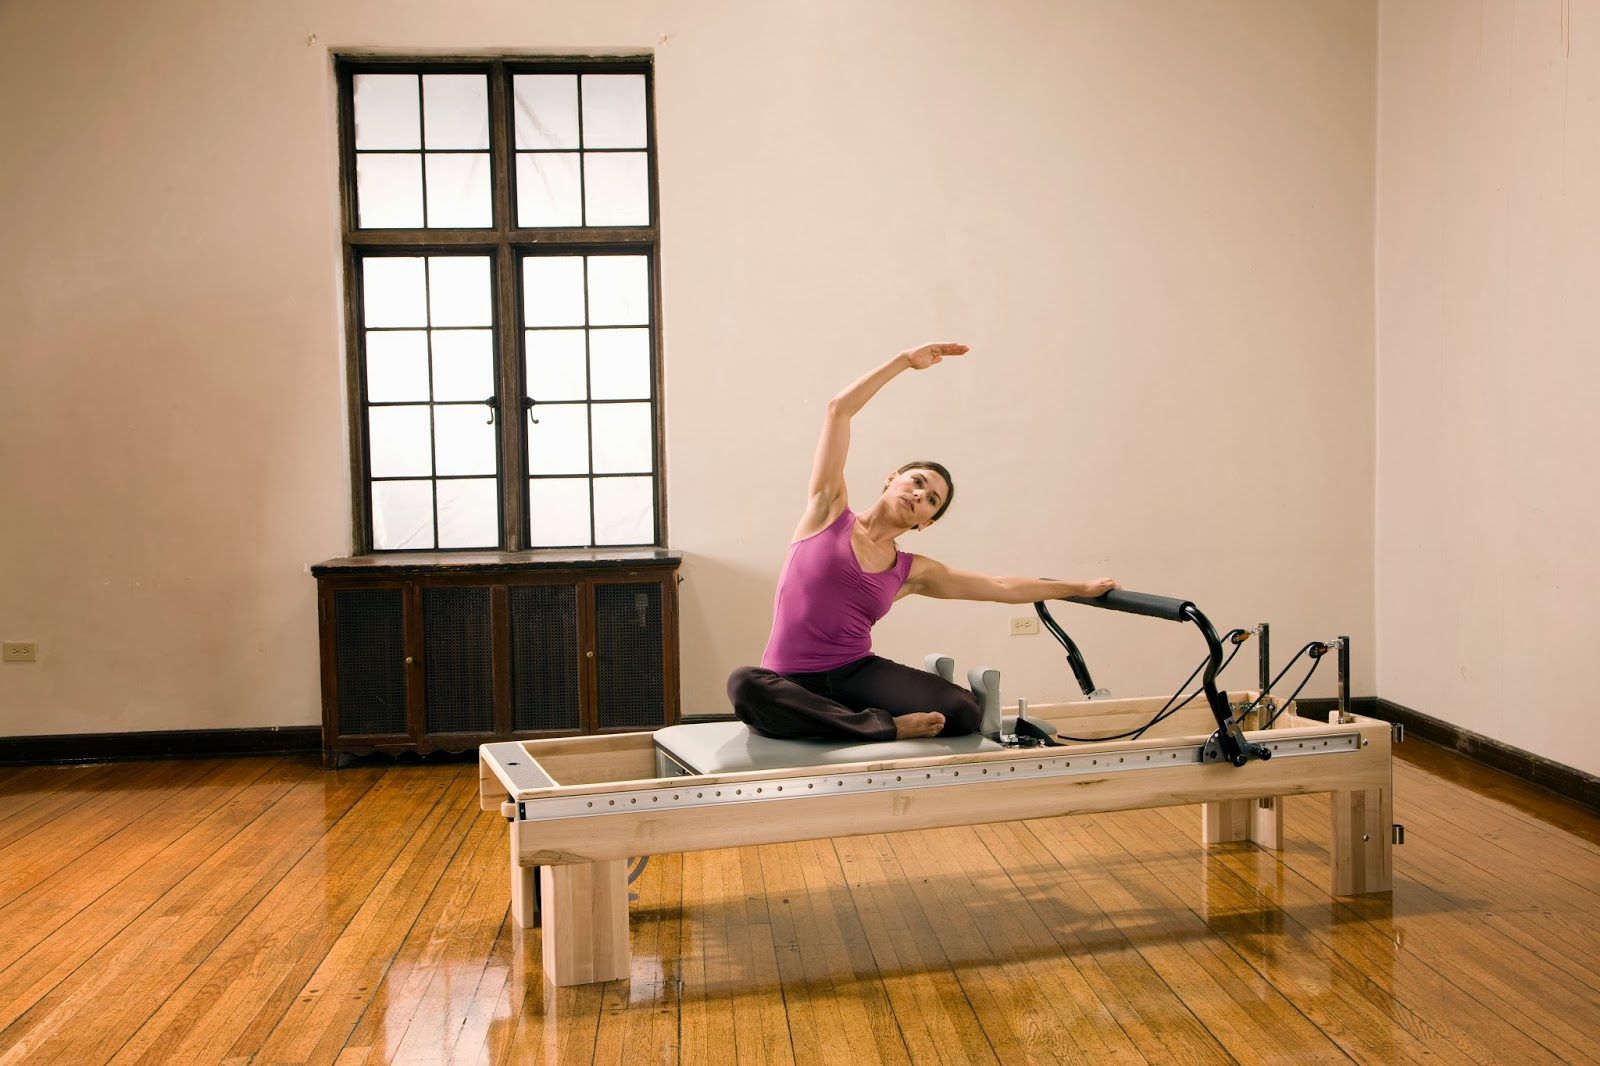 Woman on reformer equipment